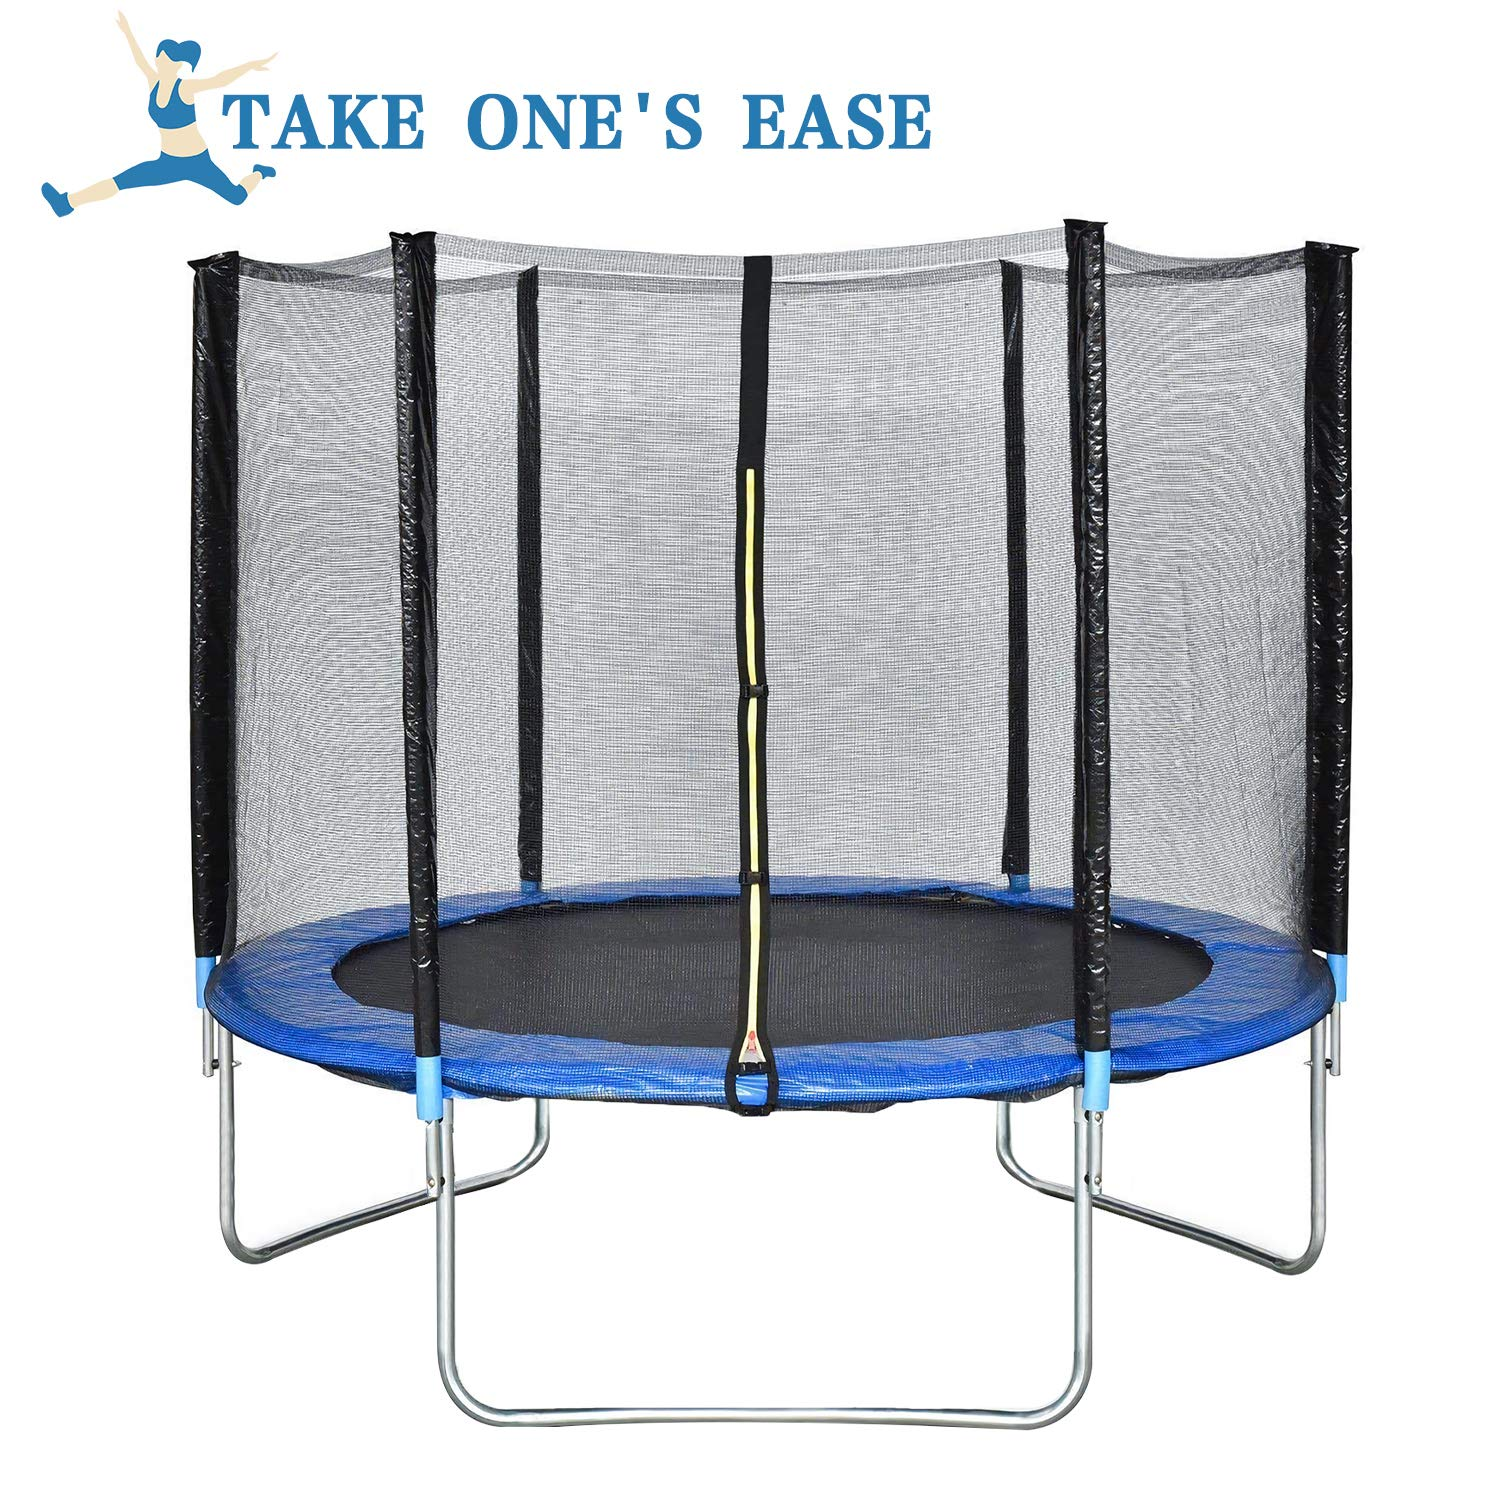 BestMassage Trampoline 10FT Round Jumping Table with Safety Enclosure Net Sping Pad Combo Bounding Bed Trampoline Fitness Equipment by BestMassage